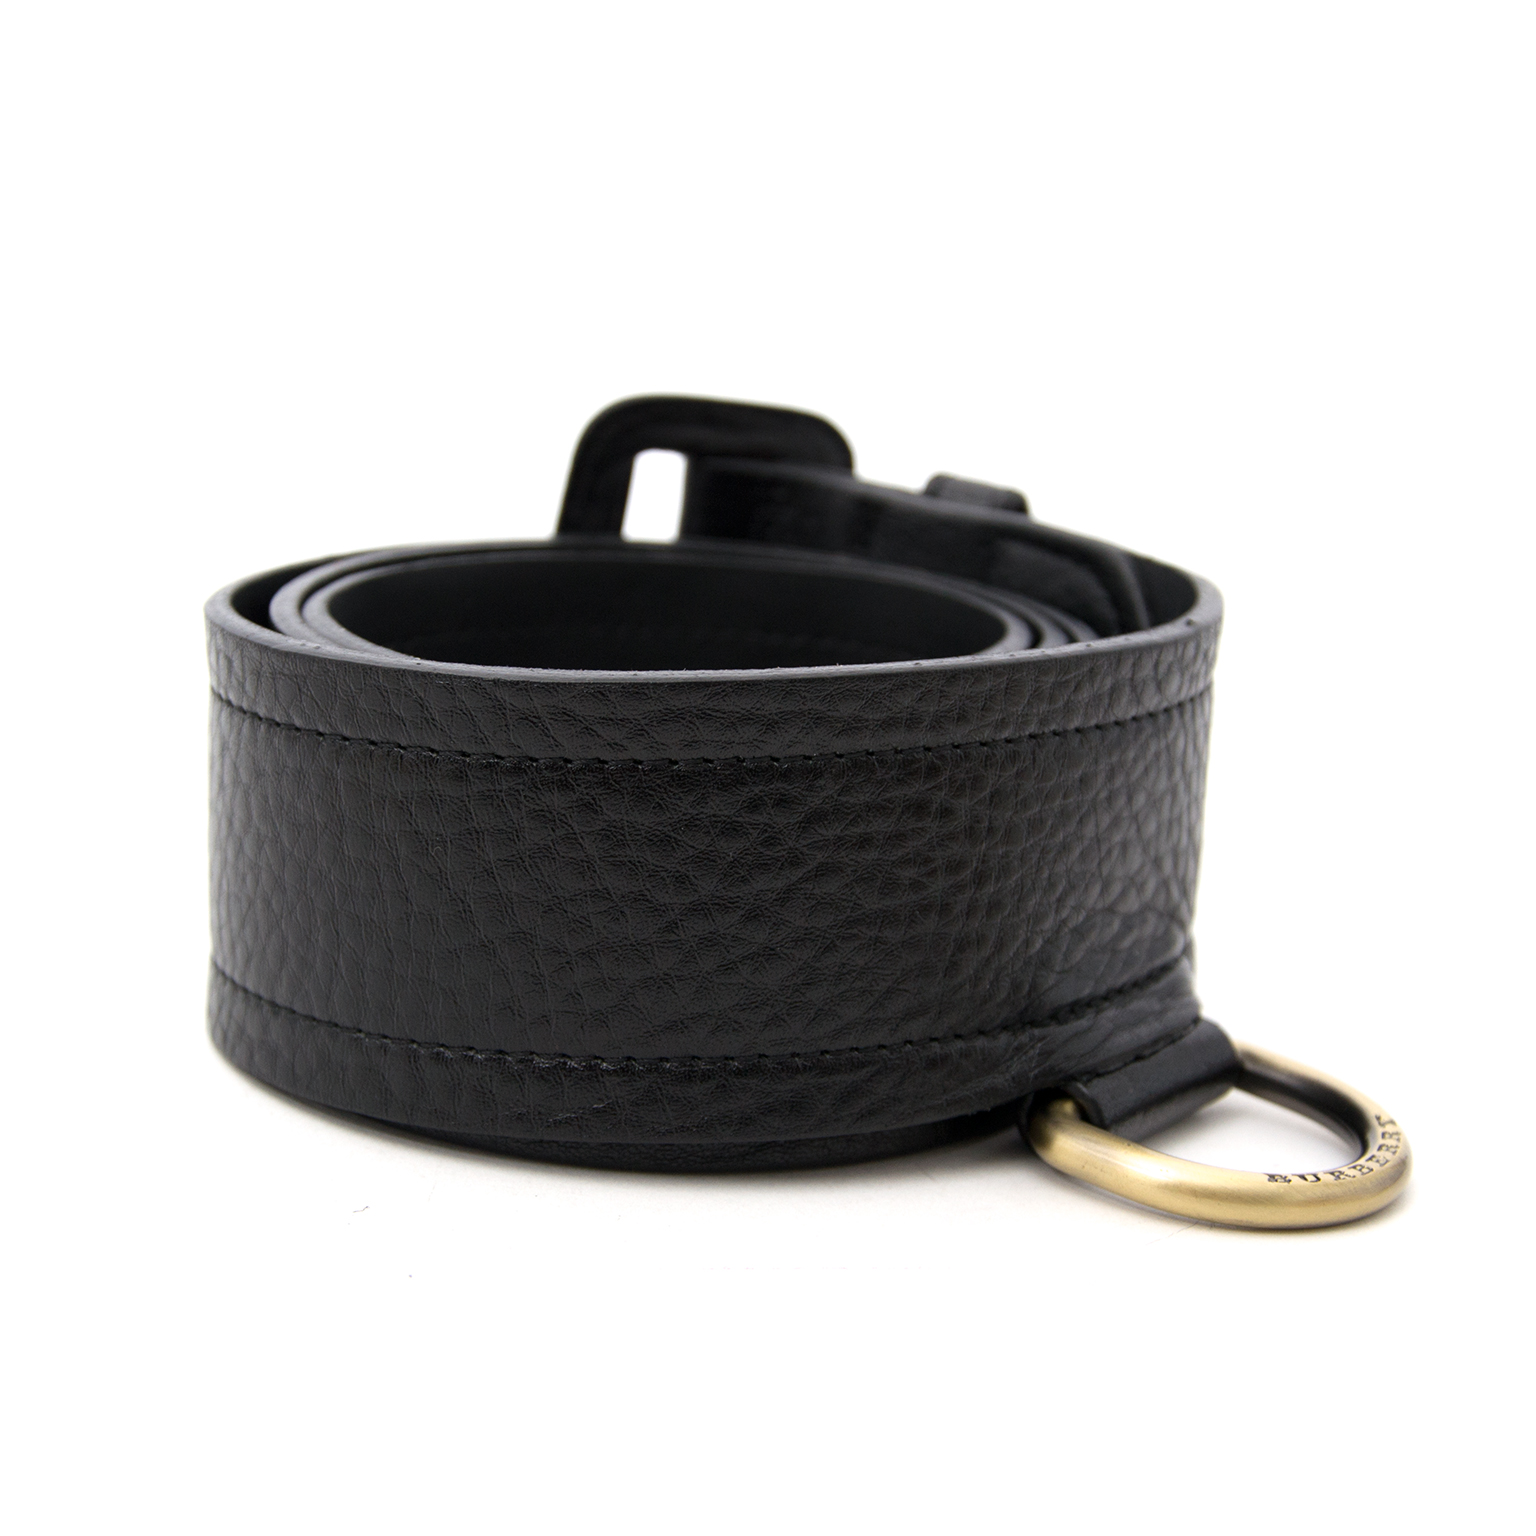 We buy and sell your timeless luxury accessories such as Burberry Black Leather Belt